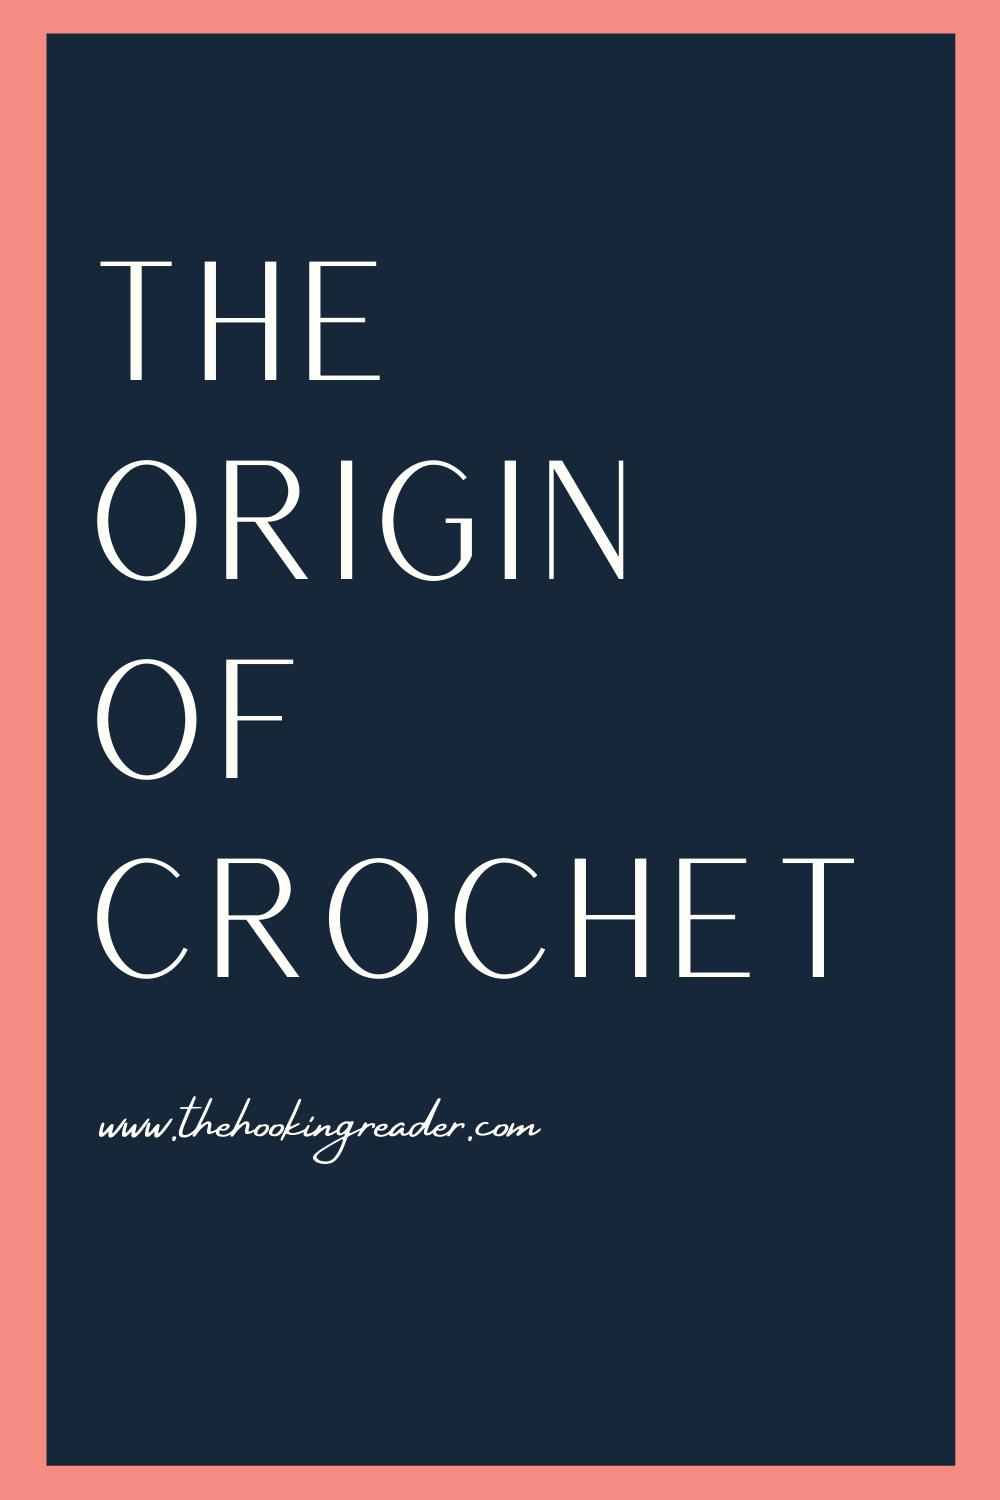 The Origin of Crochet